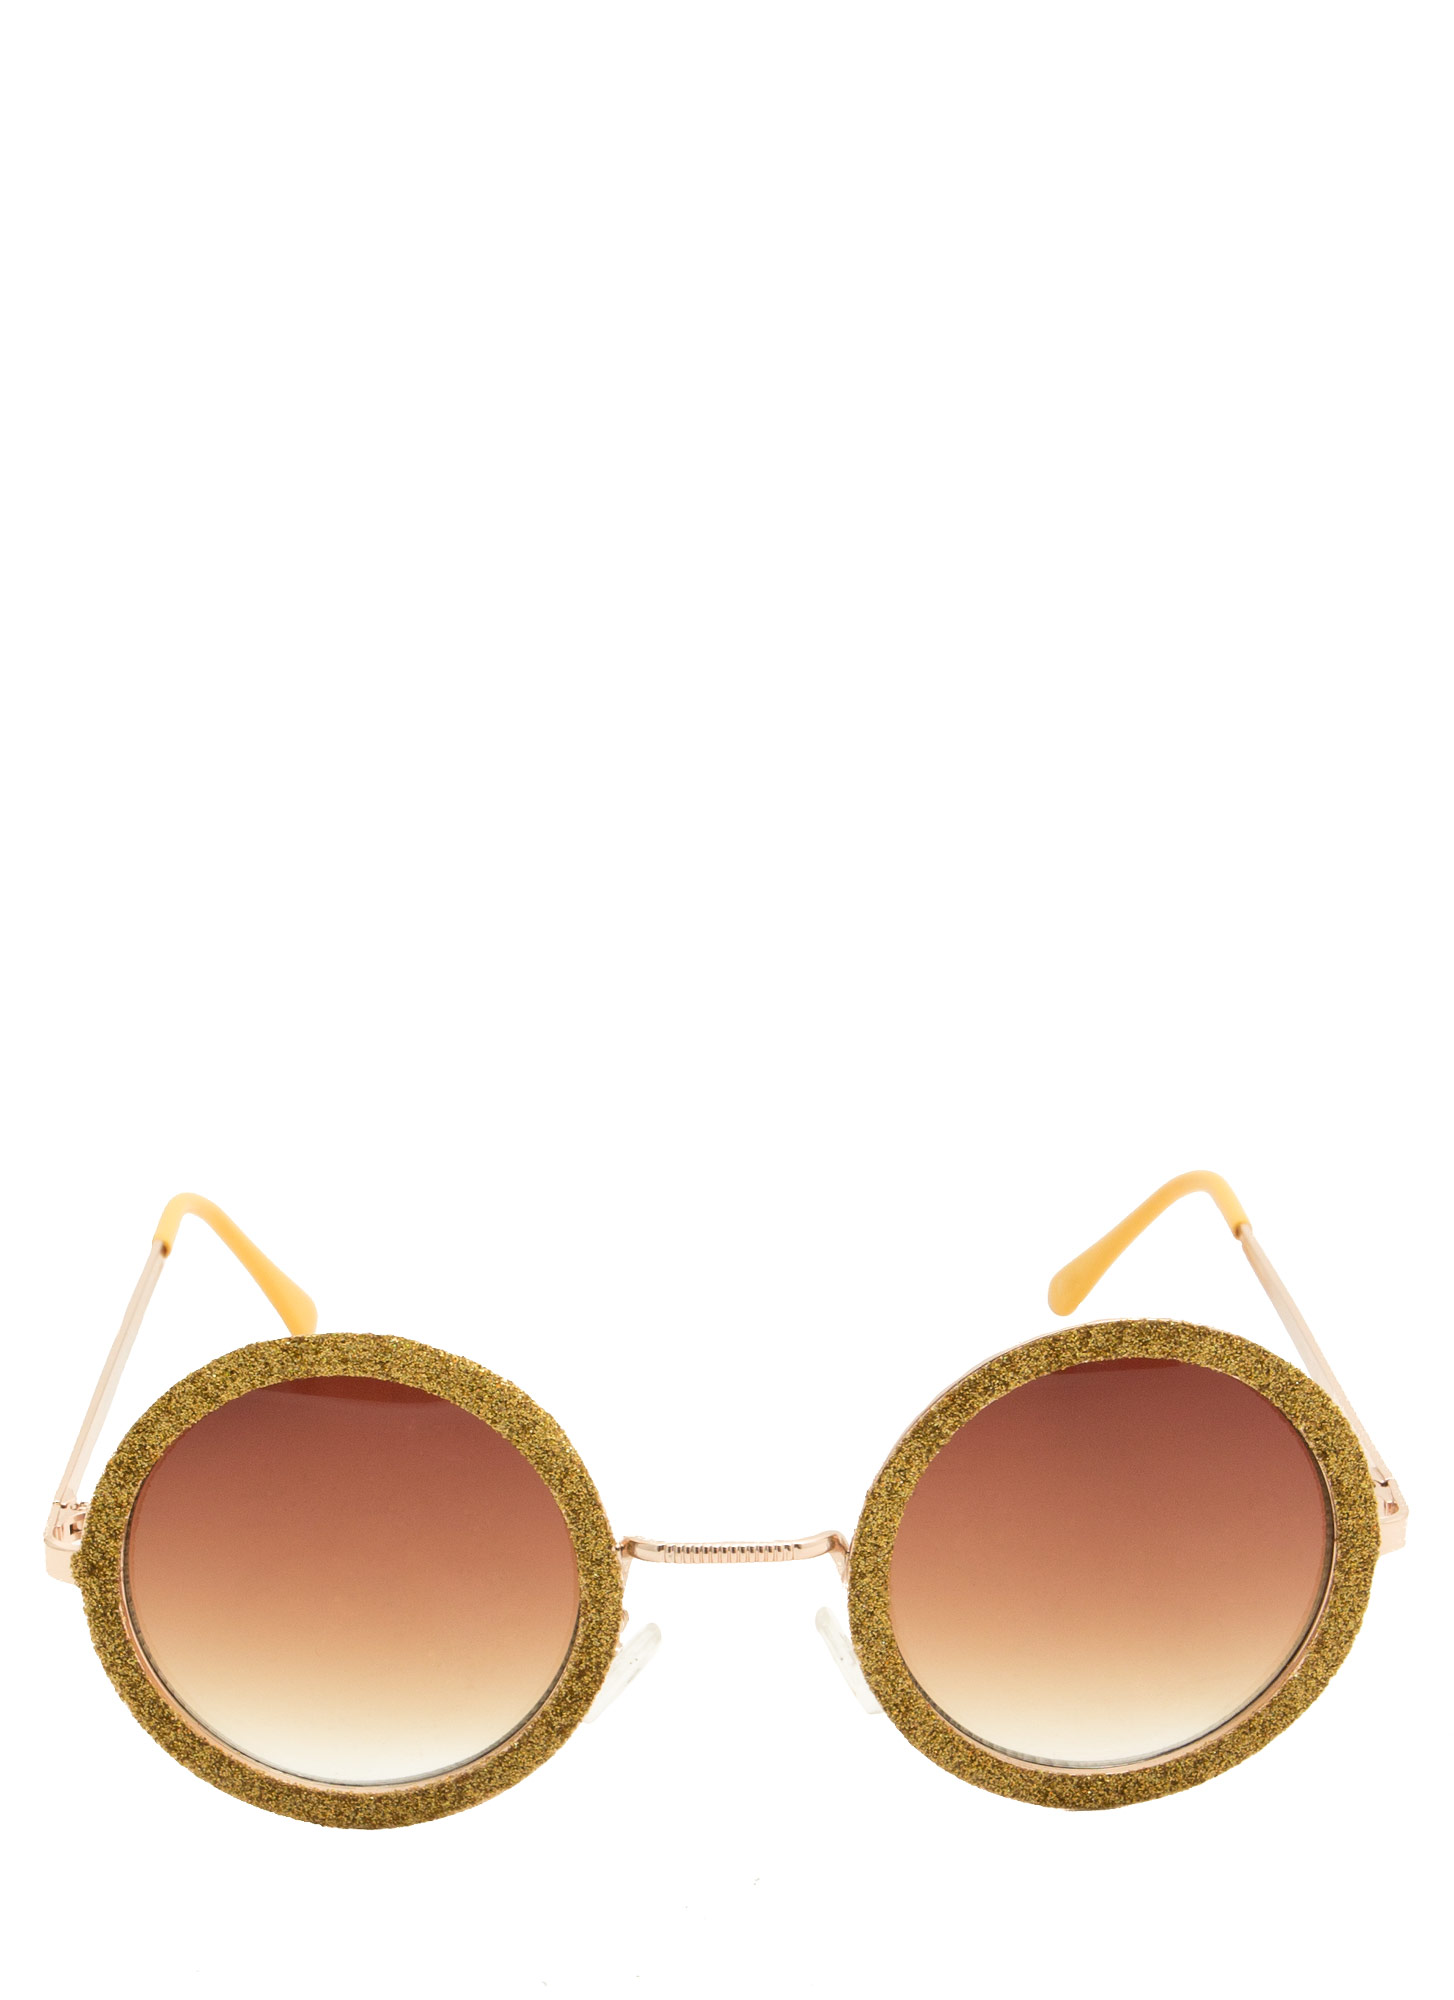 Glitzy Round Sunglasses GOLD